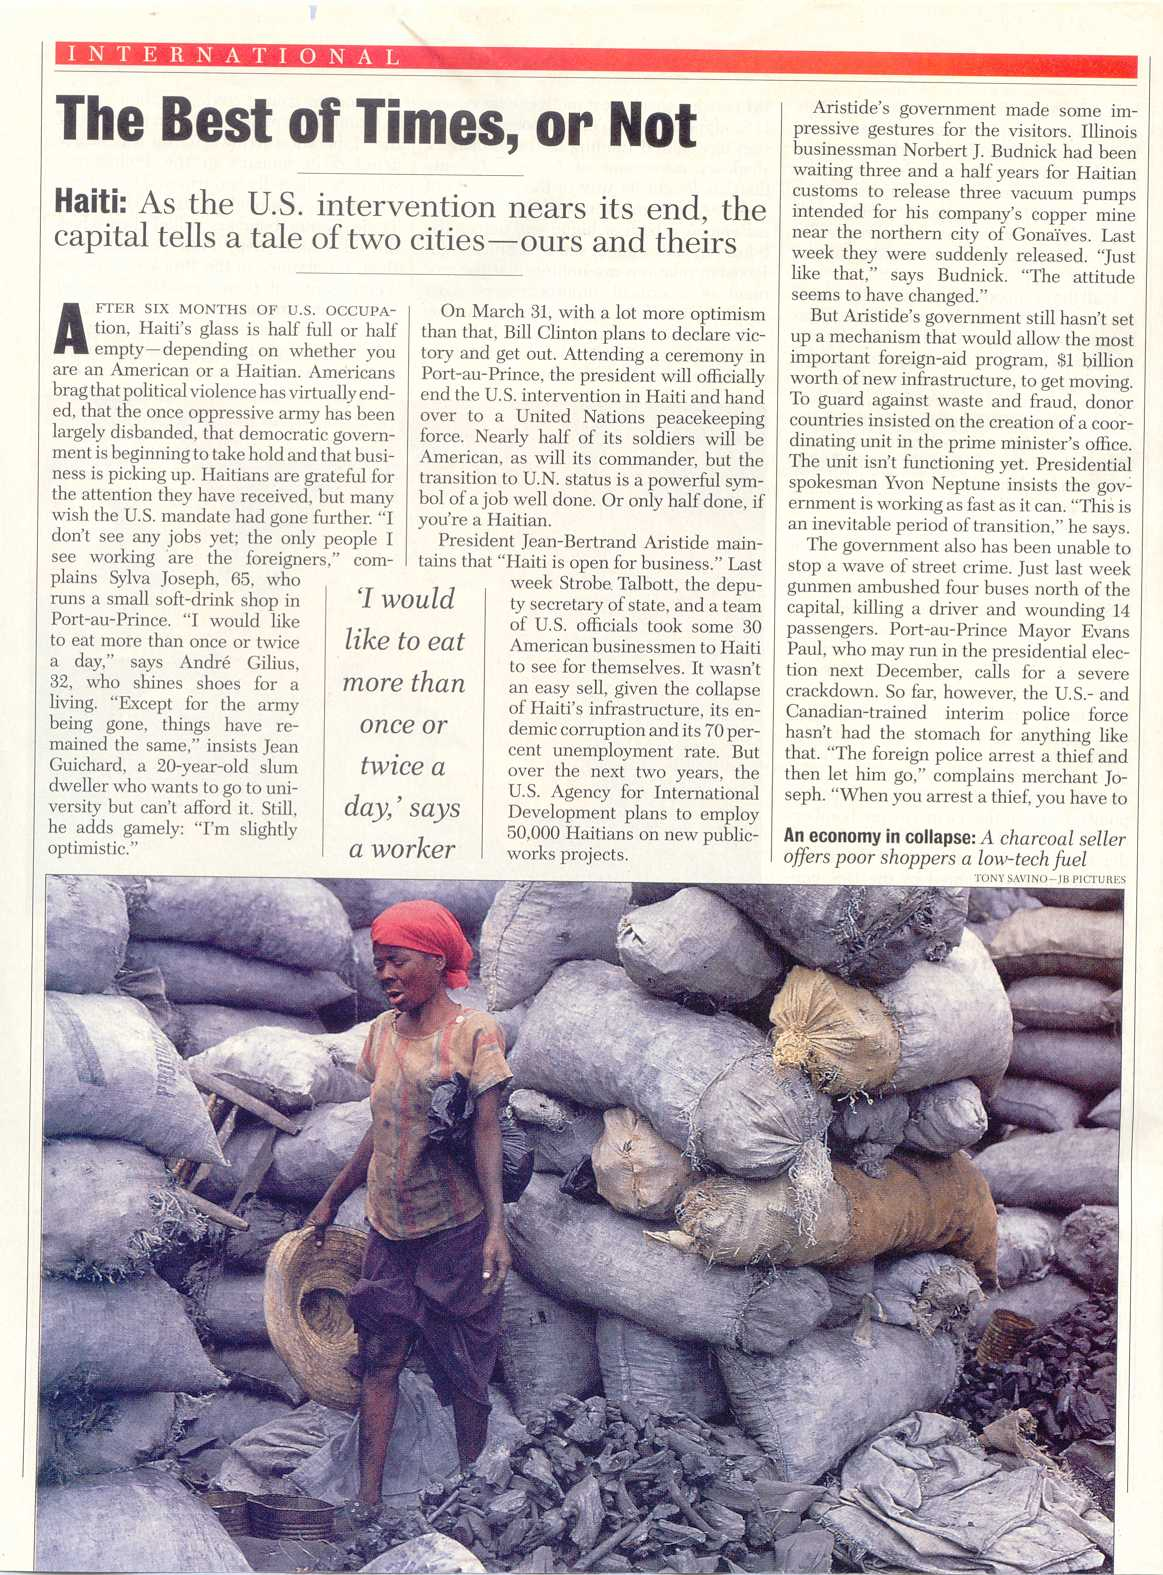 Peter Katel On The U.S. Occupation Of Haiti – Newsweek Magazine (1995)